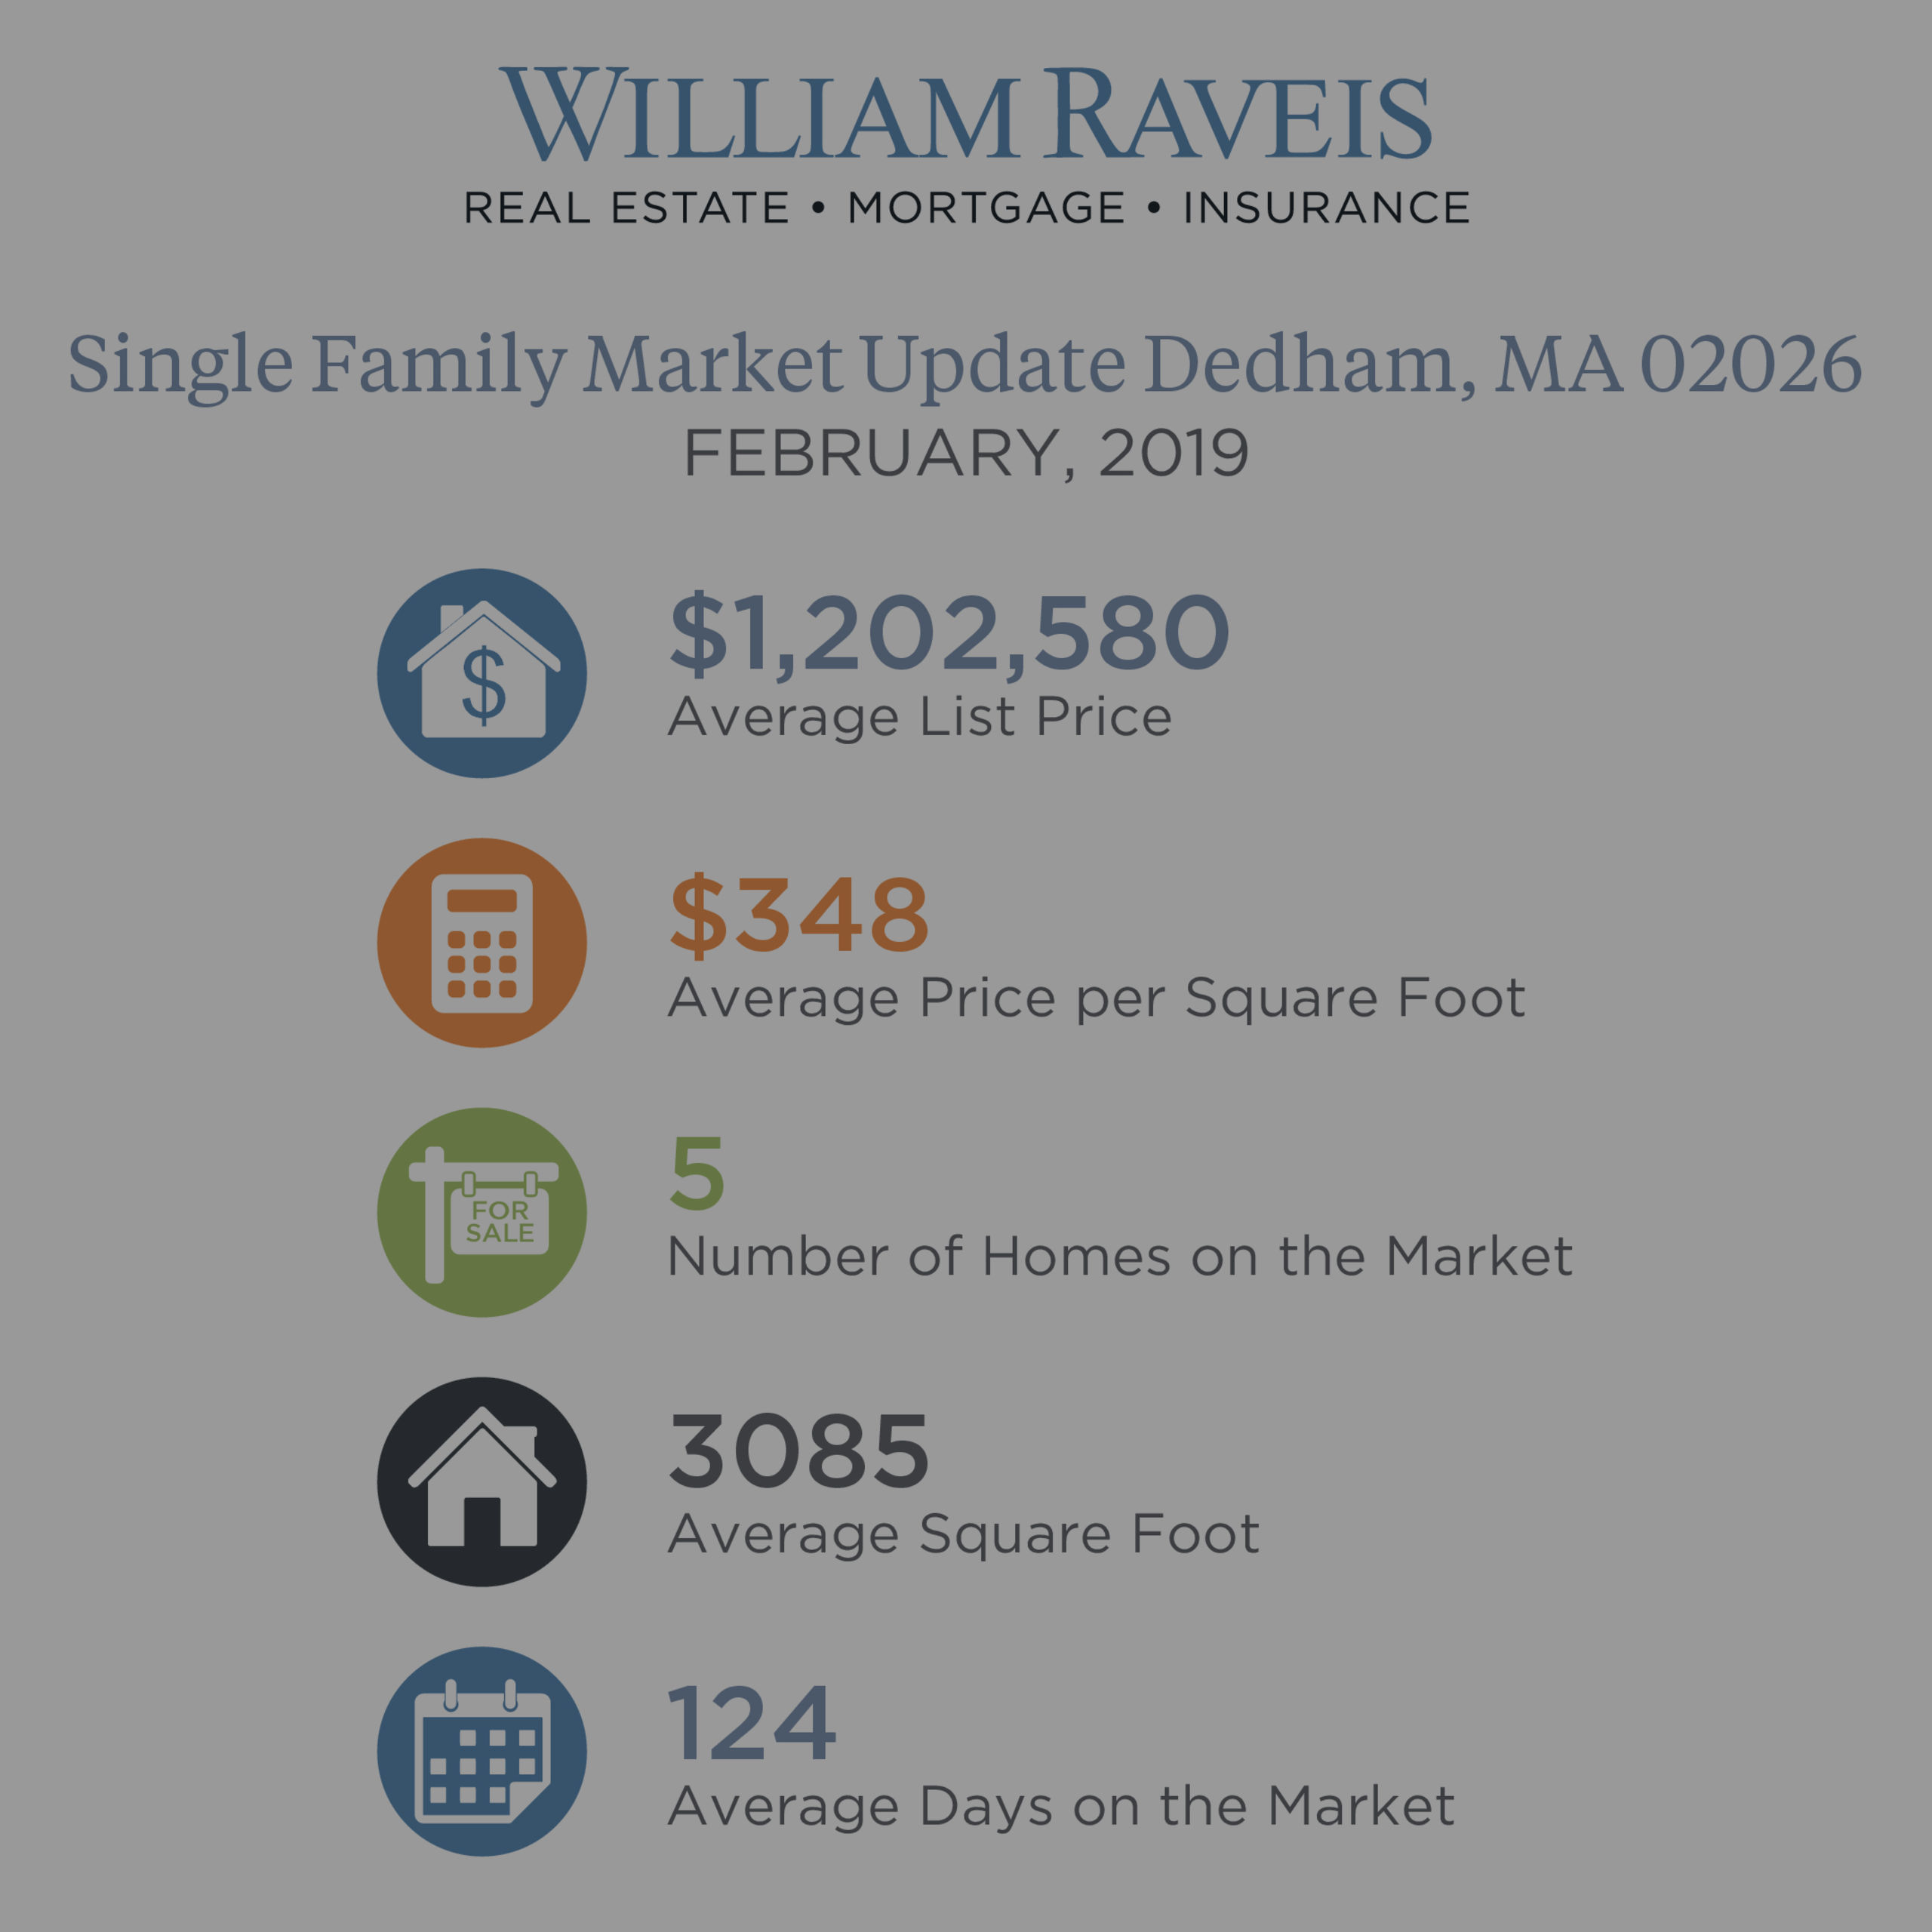 Dedham Single Family & Condominium Housing Market Update February 2019